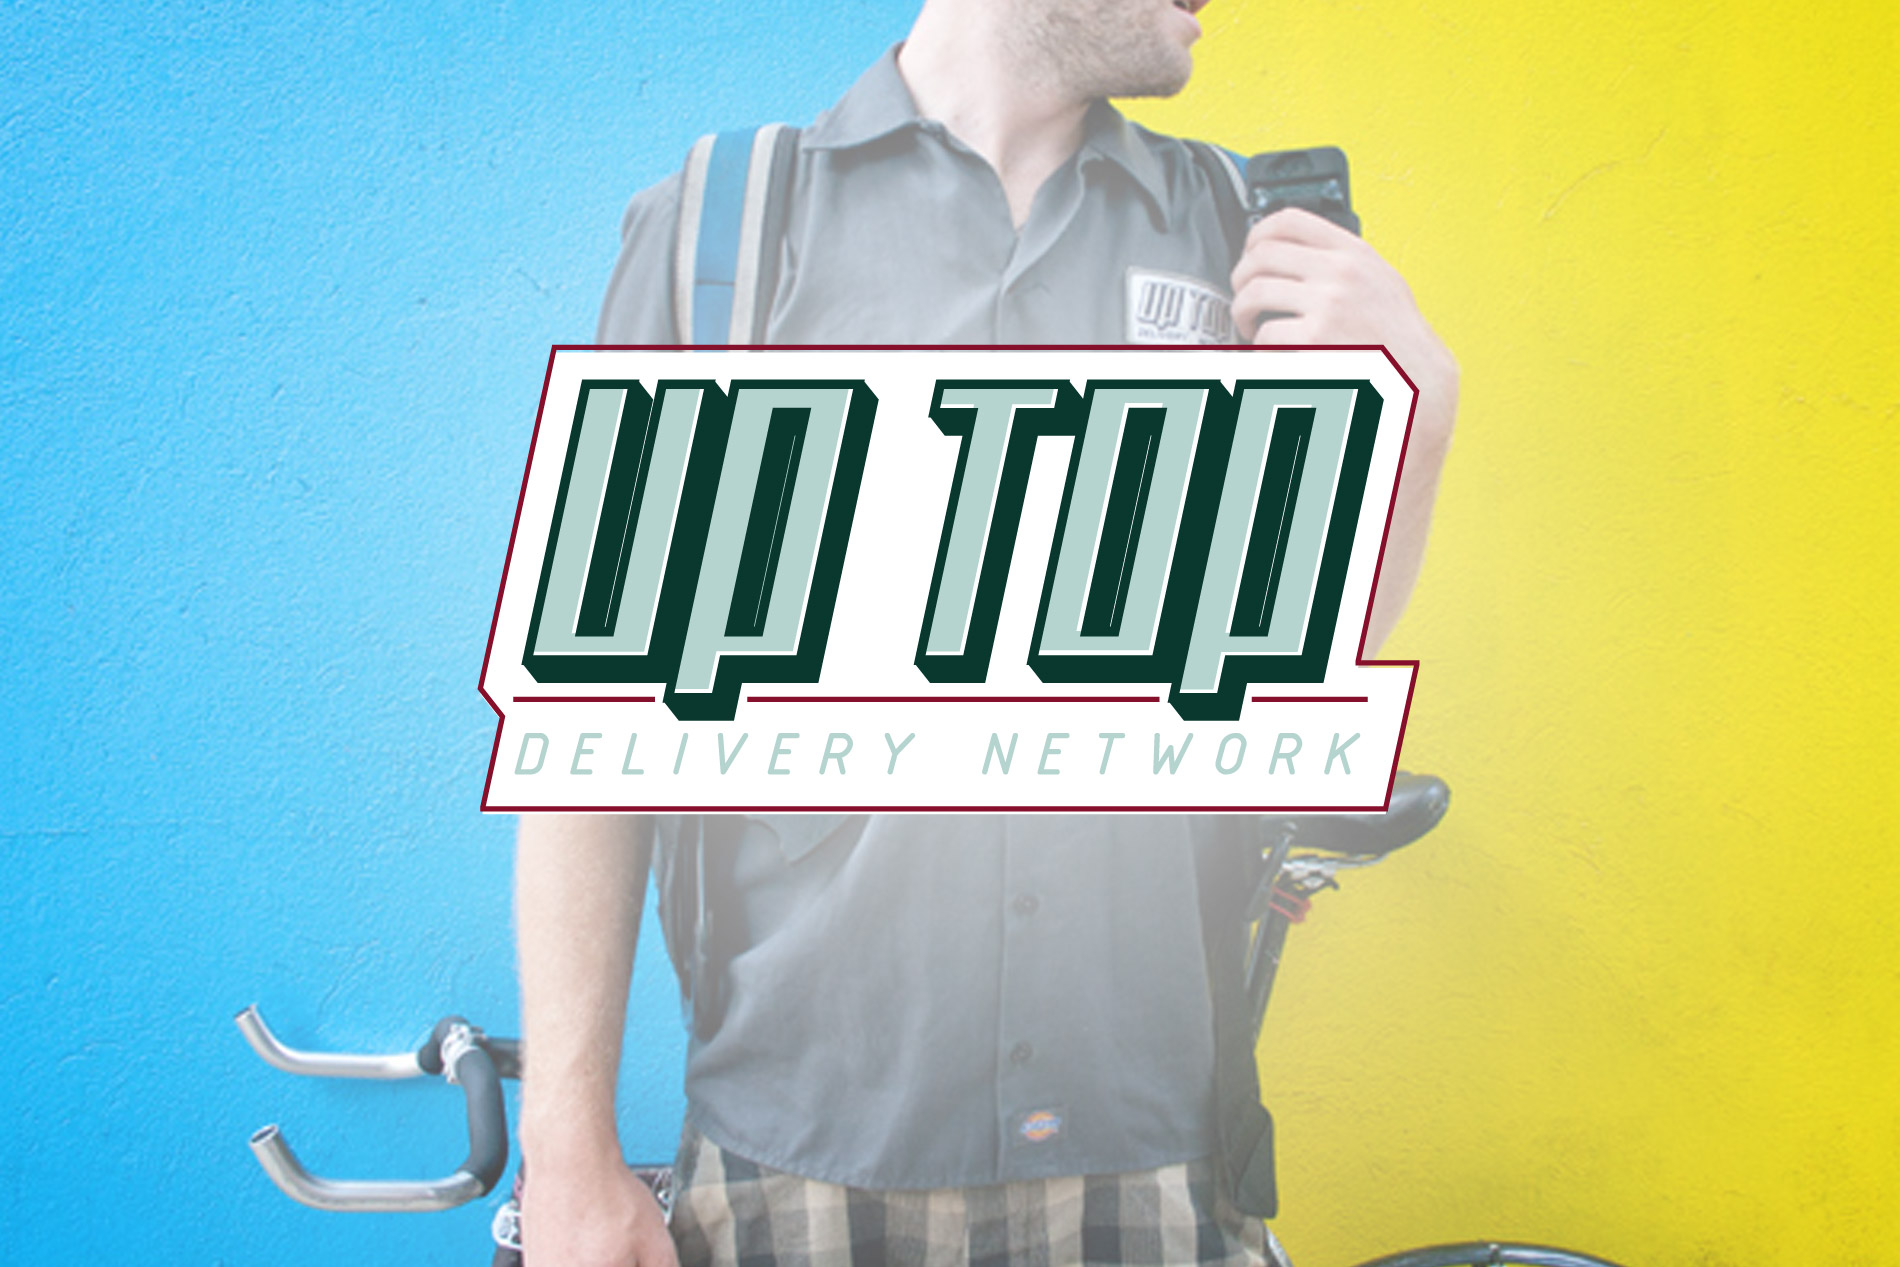 delivery network Content delivery network ltd prirechnaya 25a, office 7 04210 kyiv  ukraine phone: +380952146184 fax: +380443519382 e-mail: cdnripe (at)  gmail.